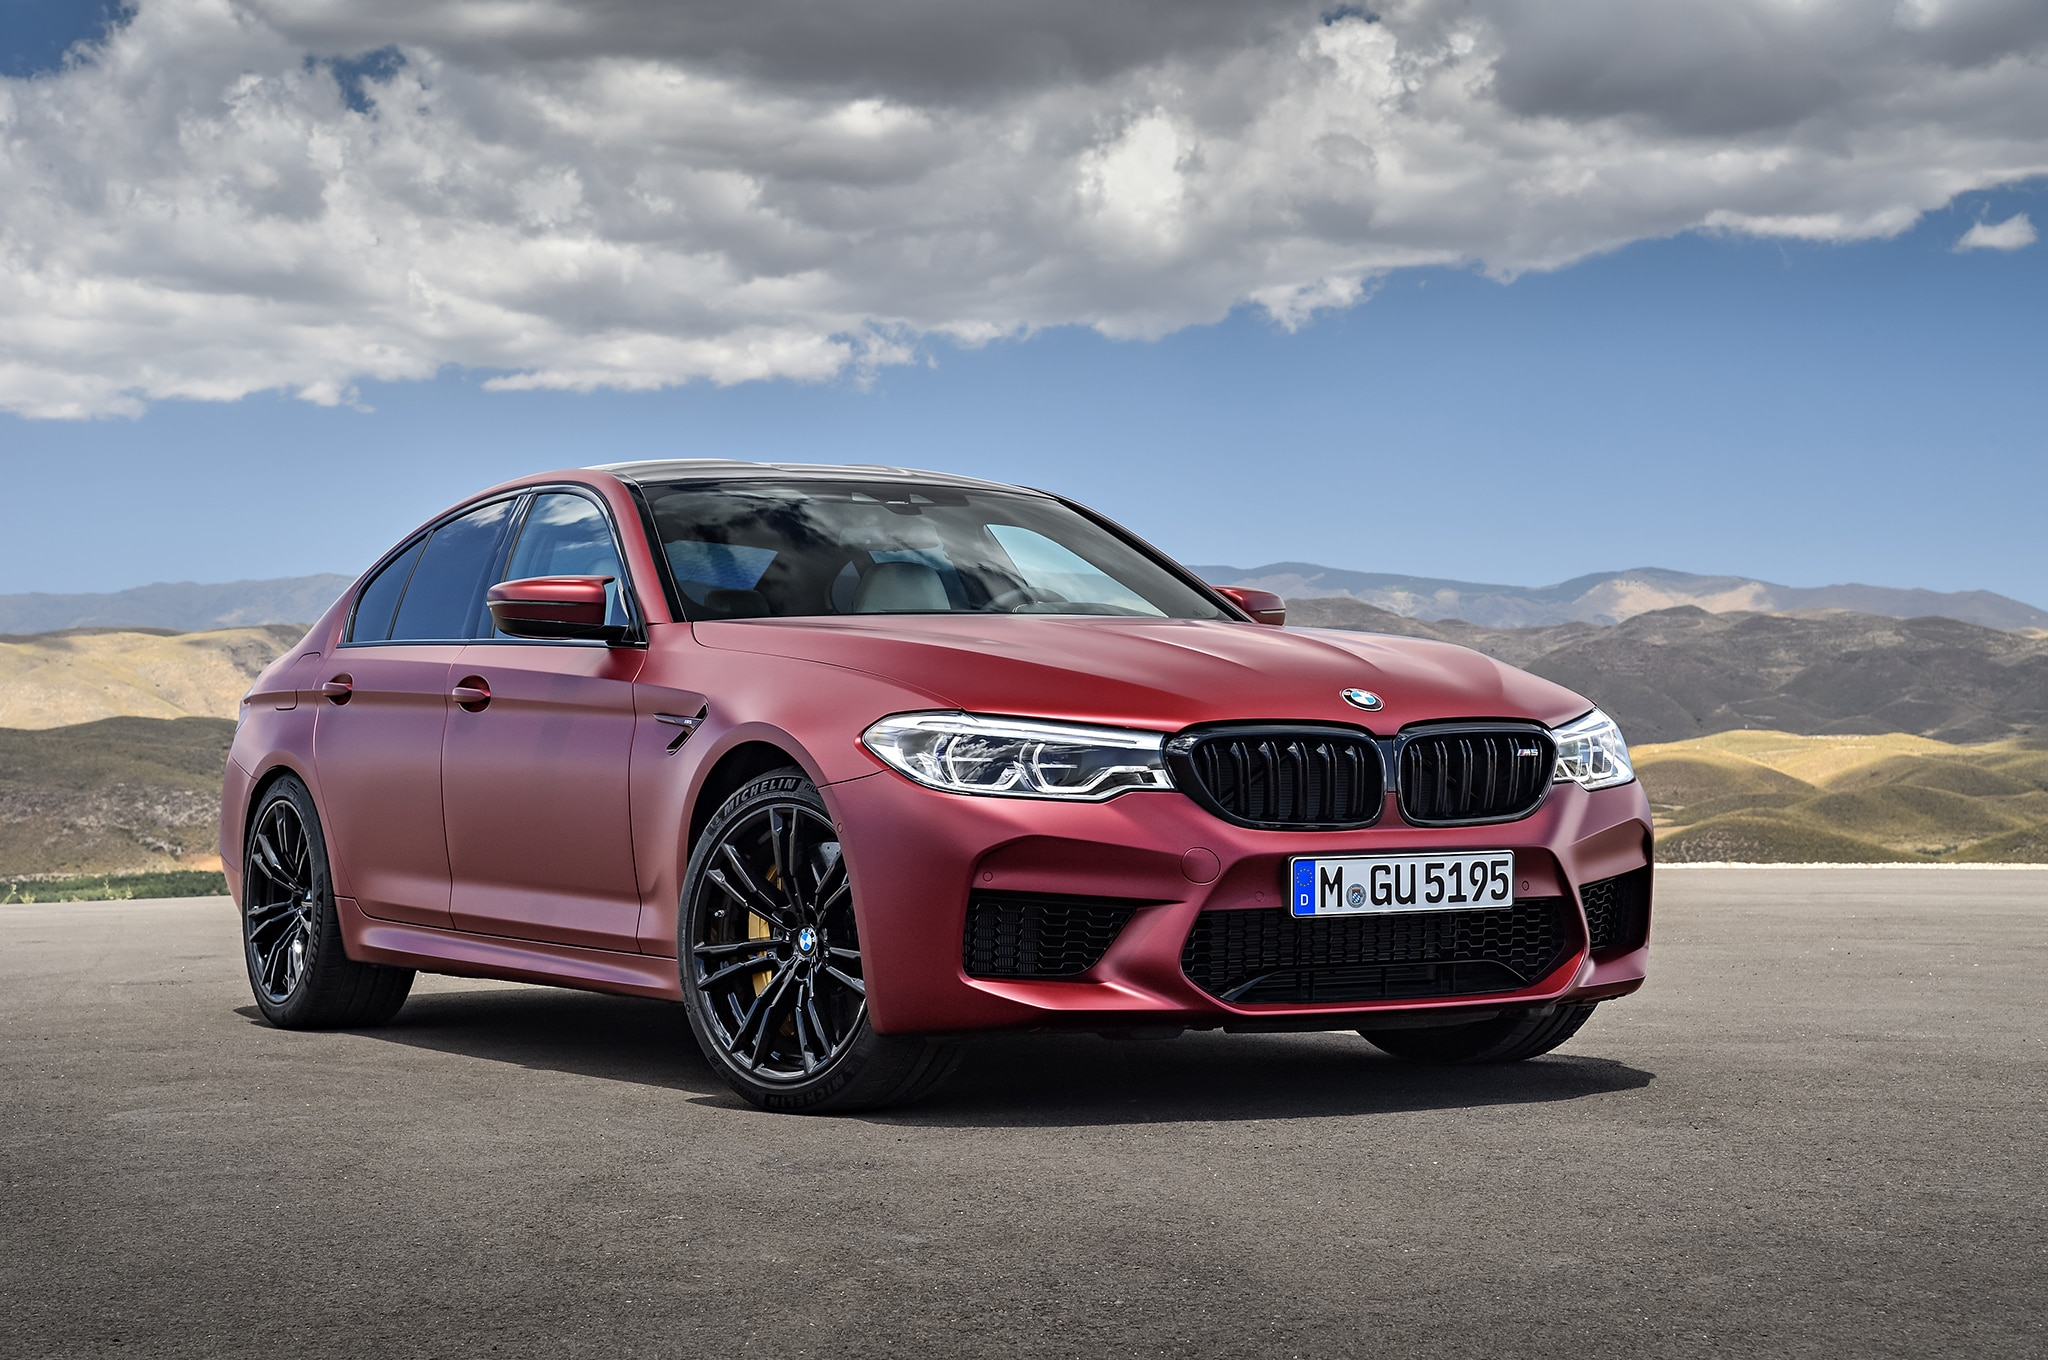 Httpsngpatriotacademy Combmw M5 Turbo Kit: 2018 BMW M5 Arrives Packing A 600-HP Twin-Turbo V-8